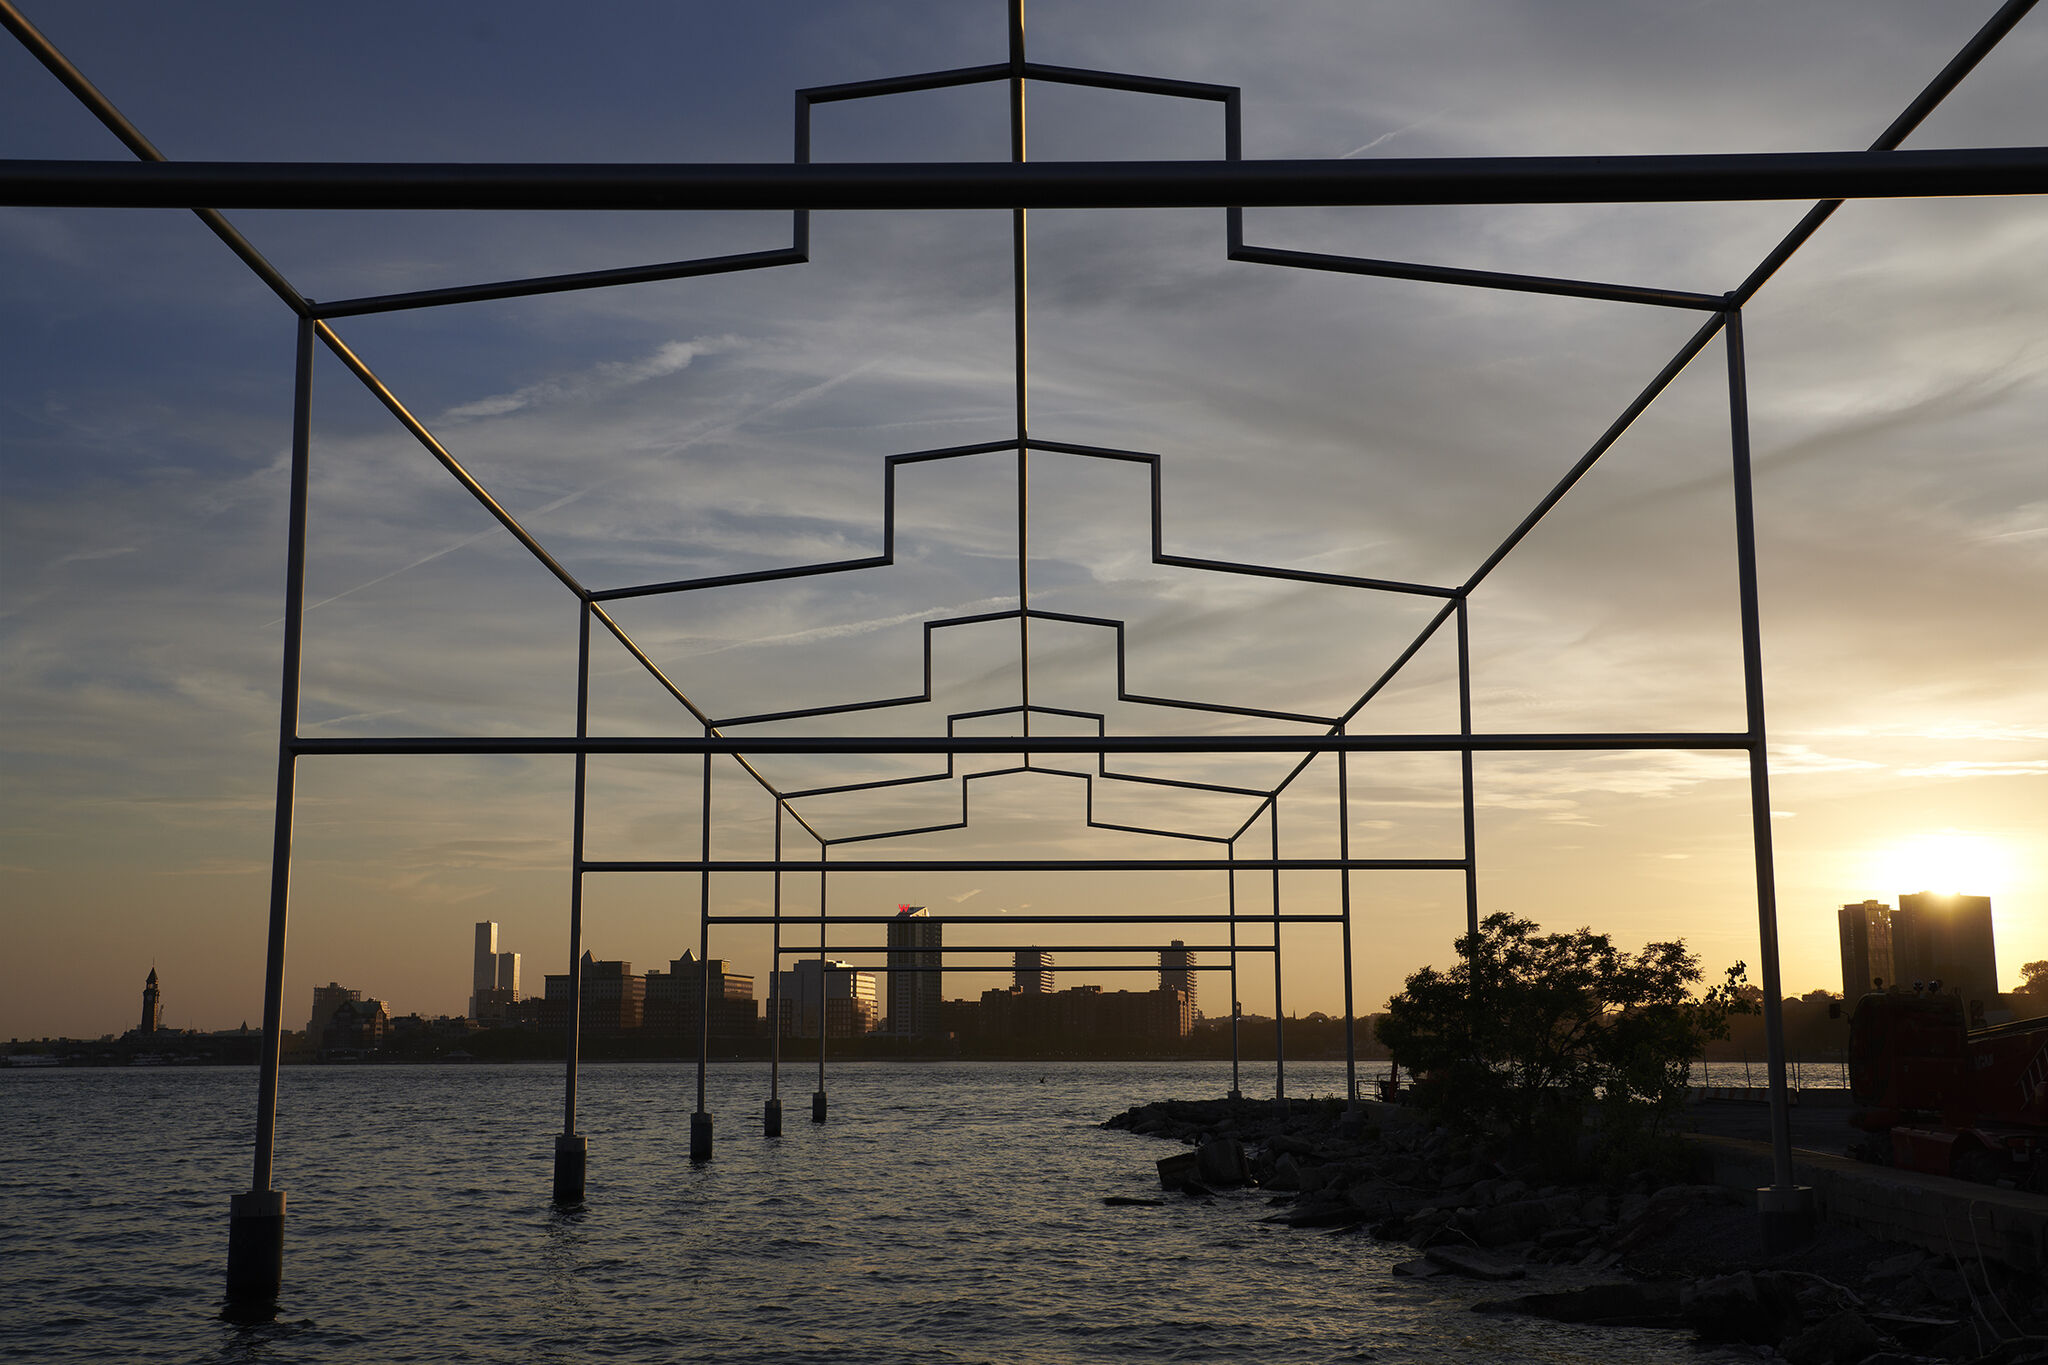 Close-up frontal view of Day's End steel sculpture, with sunset and New Jersey skyline in the background.